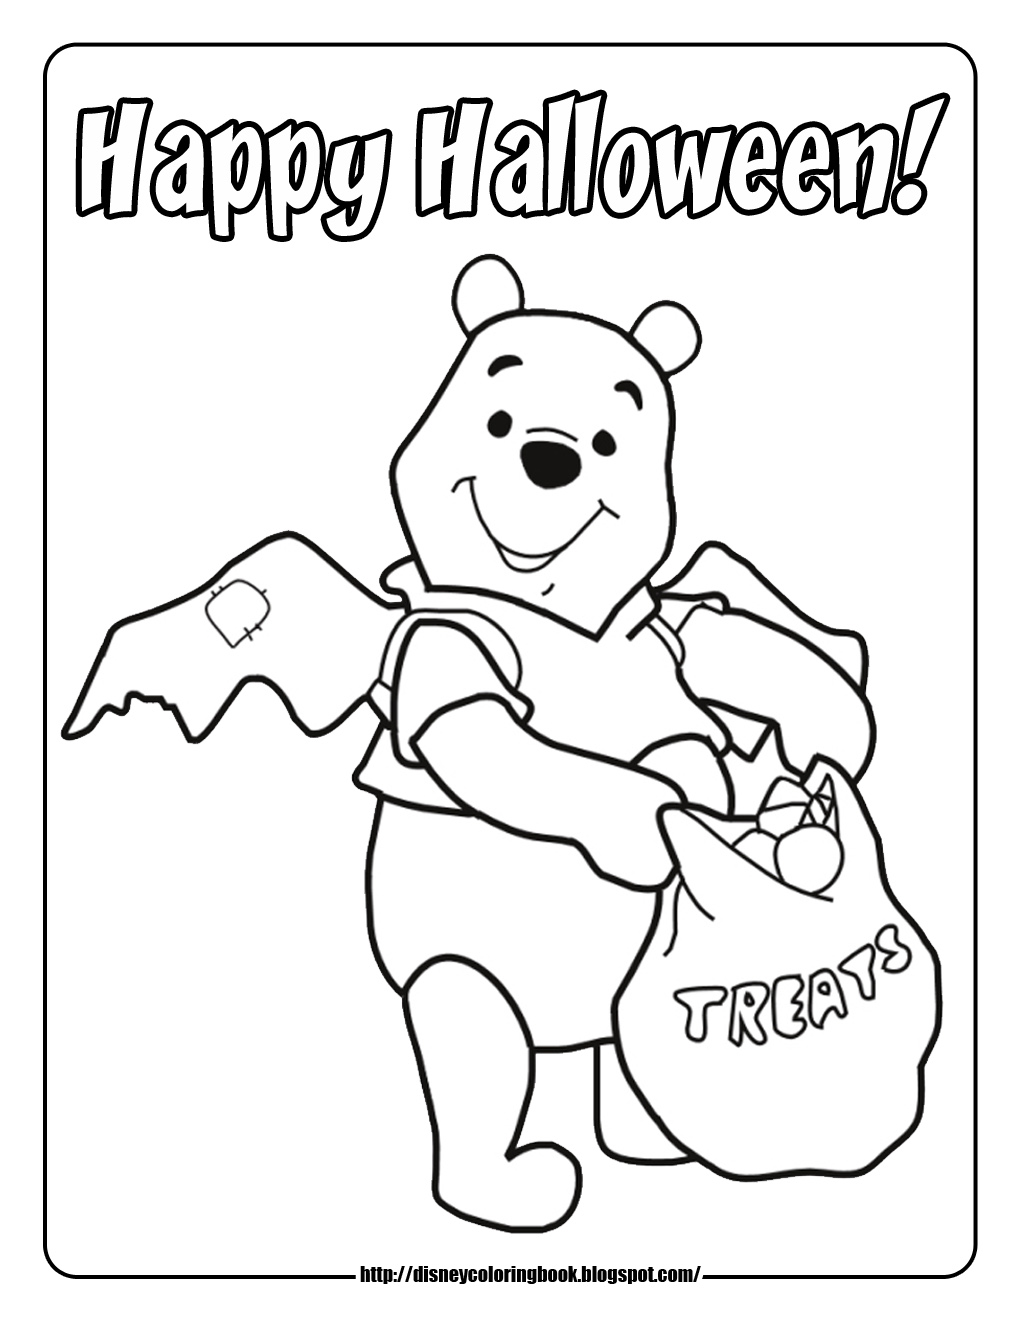 pooh and friends halloween 2 free disney halloween coloring pages